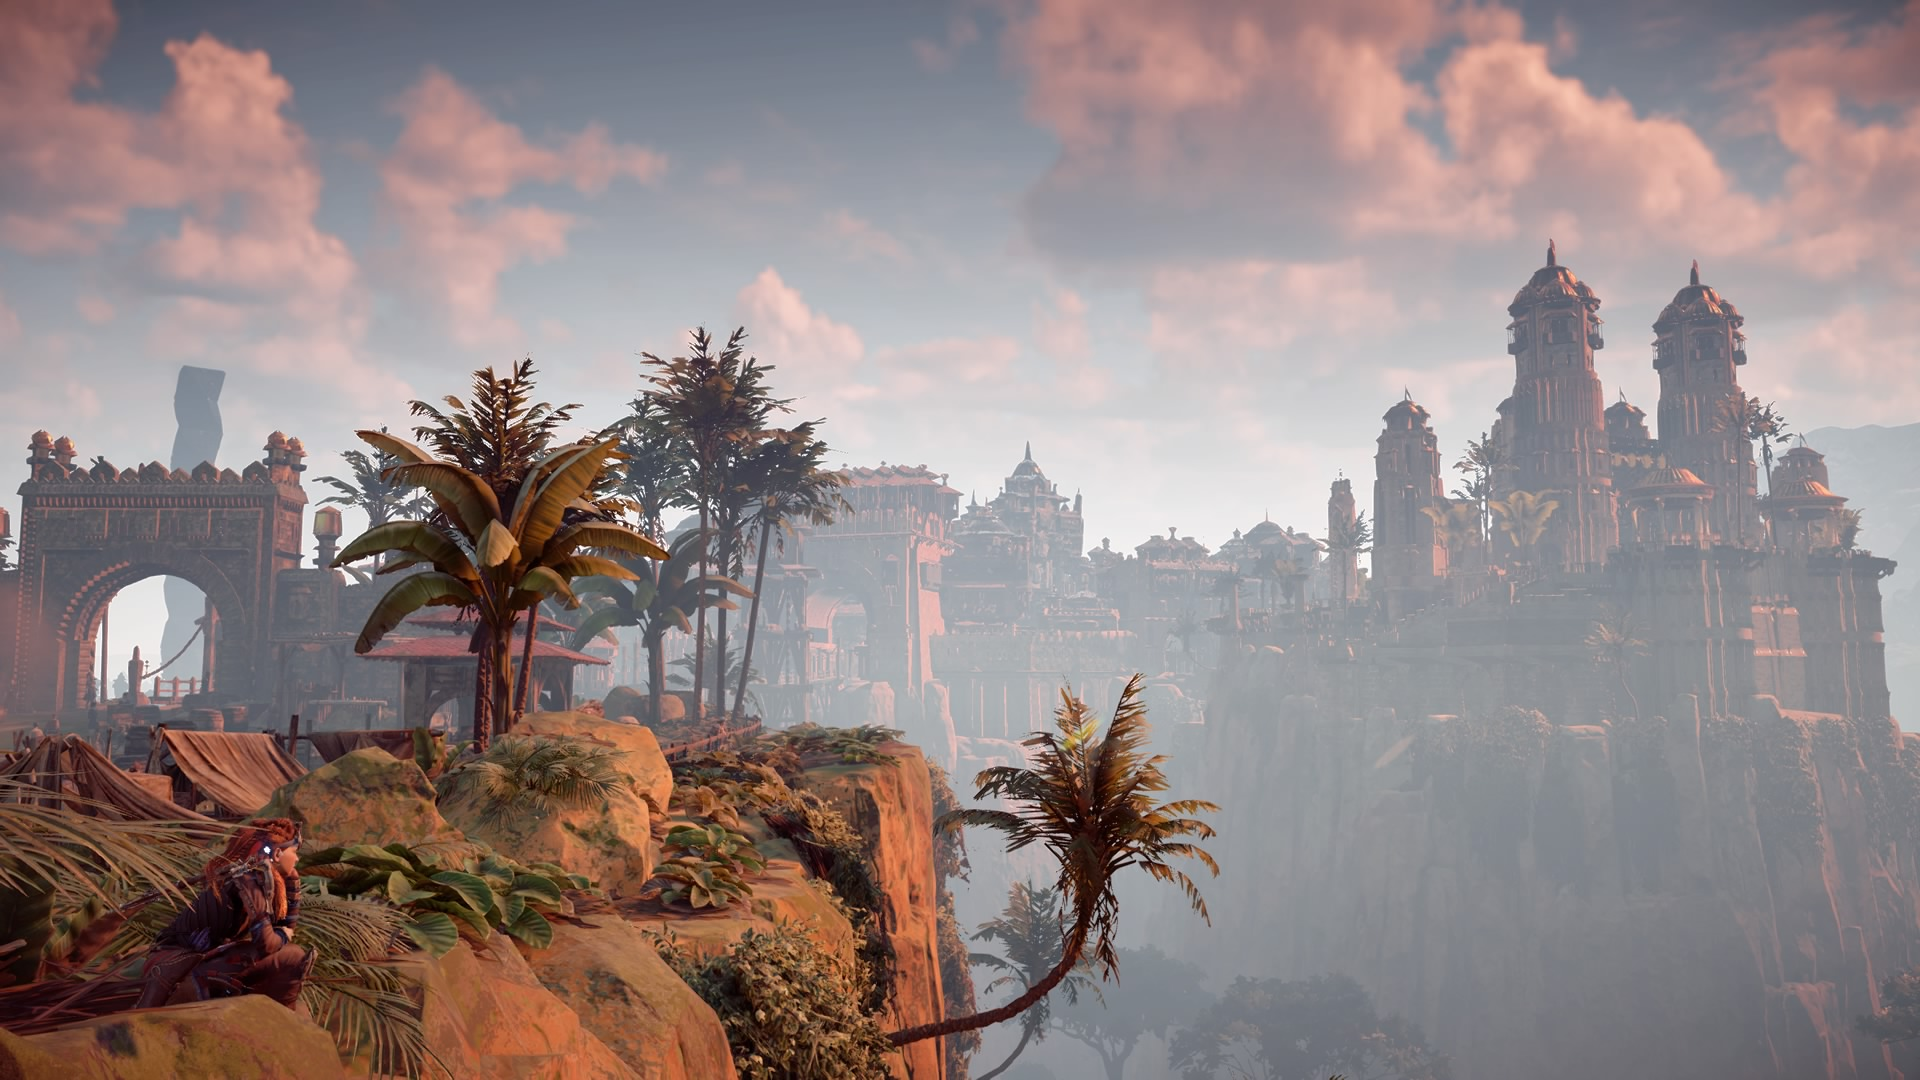 Aloy near the entrance to the city of Meridian in Horizon Zero Dawn